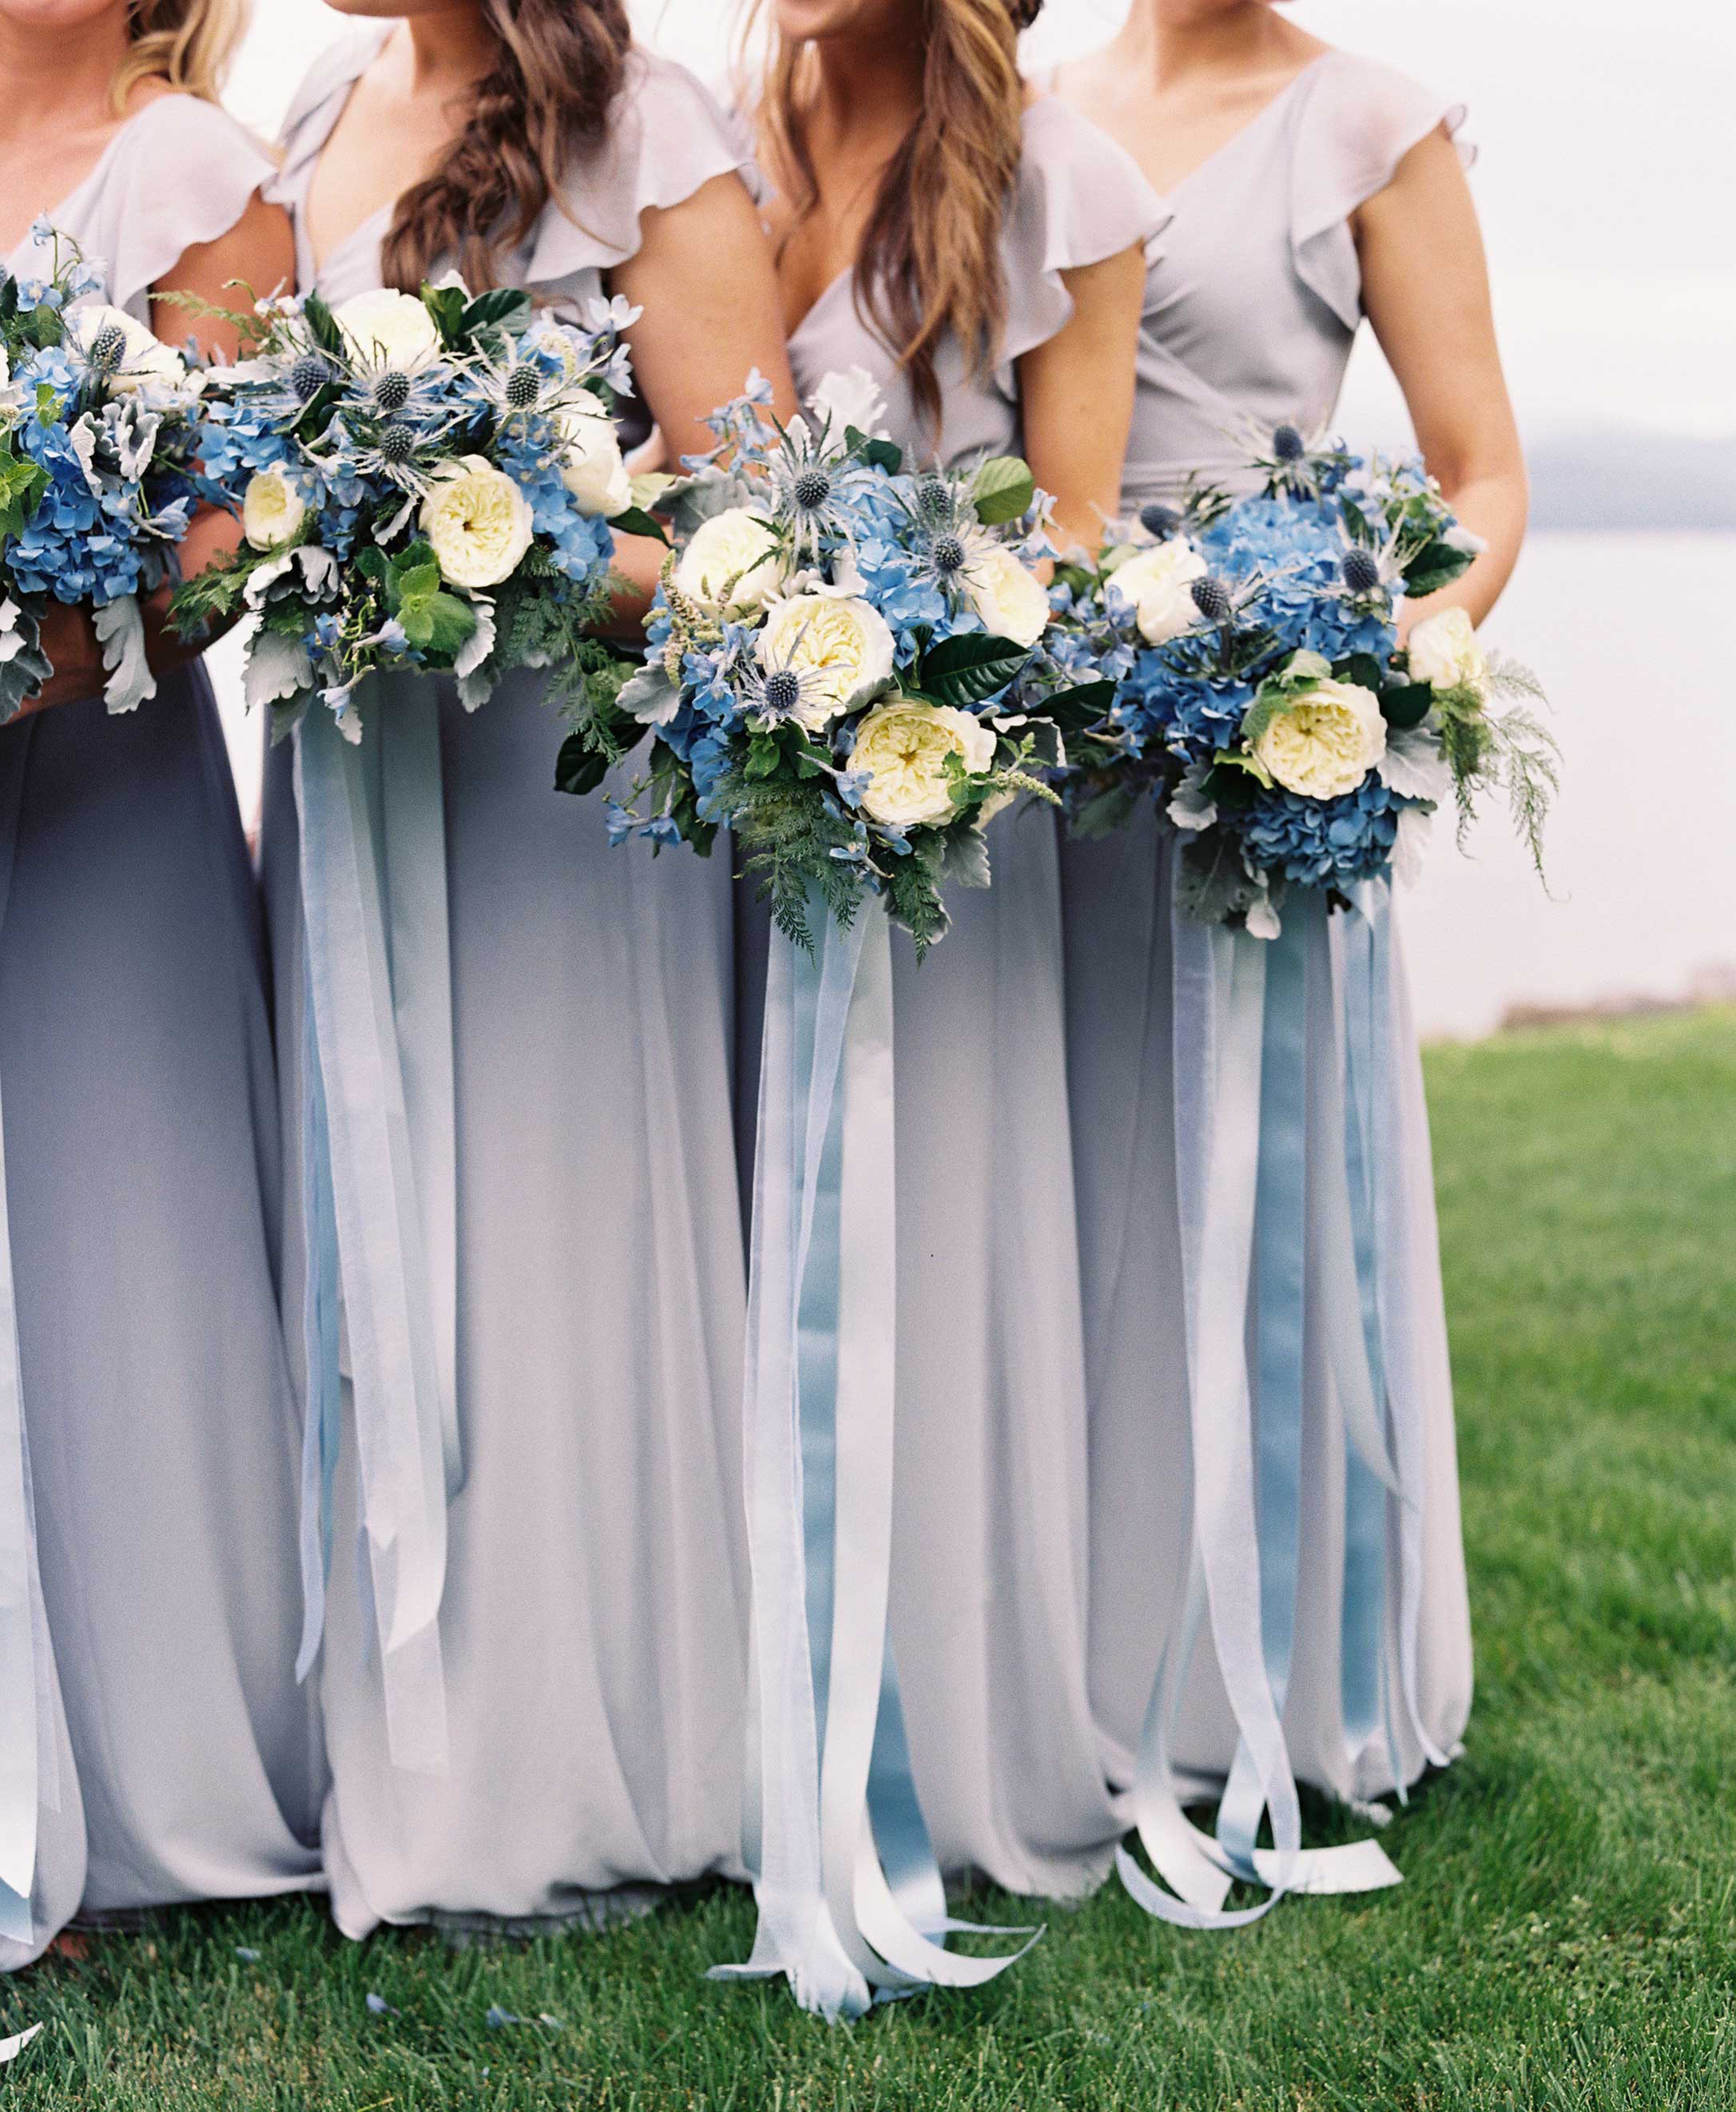 Bridesmaids in long Joanna August blue-grey dresses with blue bouquets and ribbons